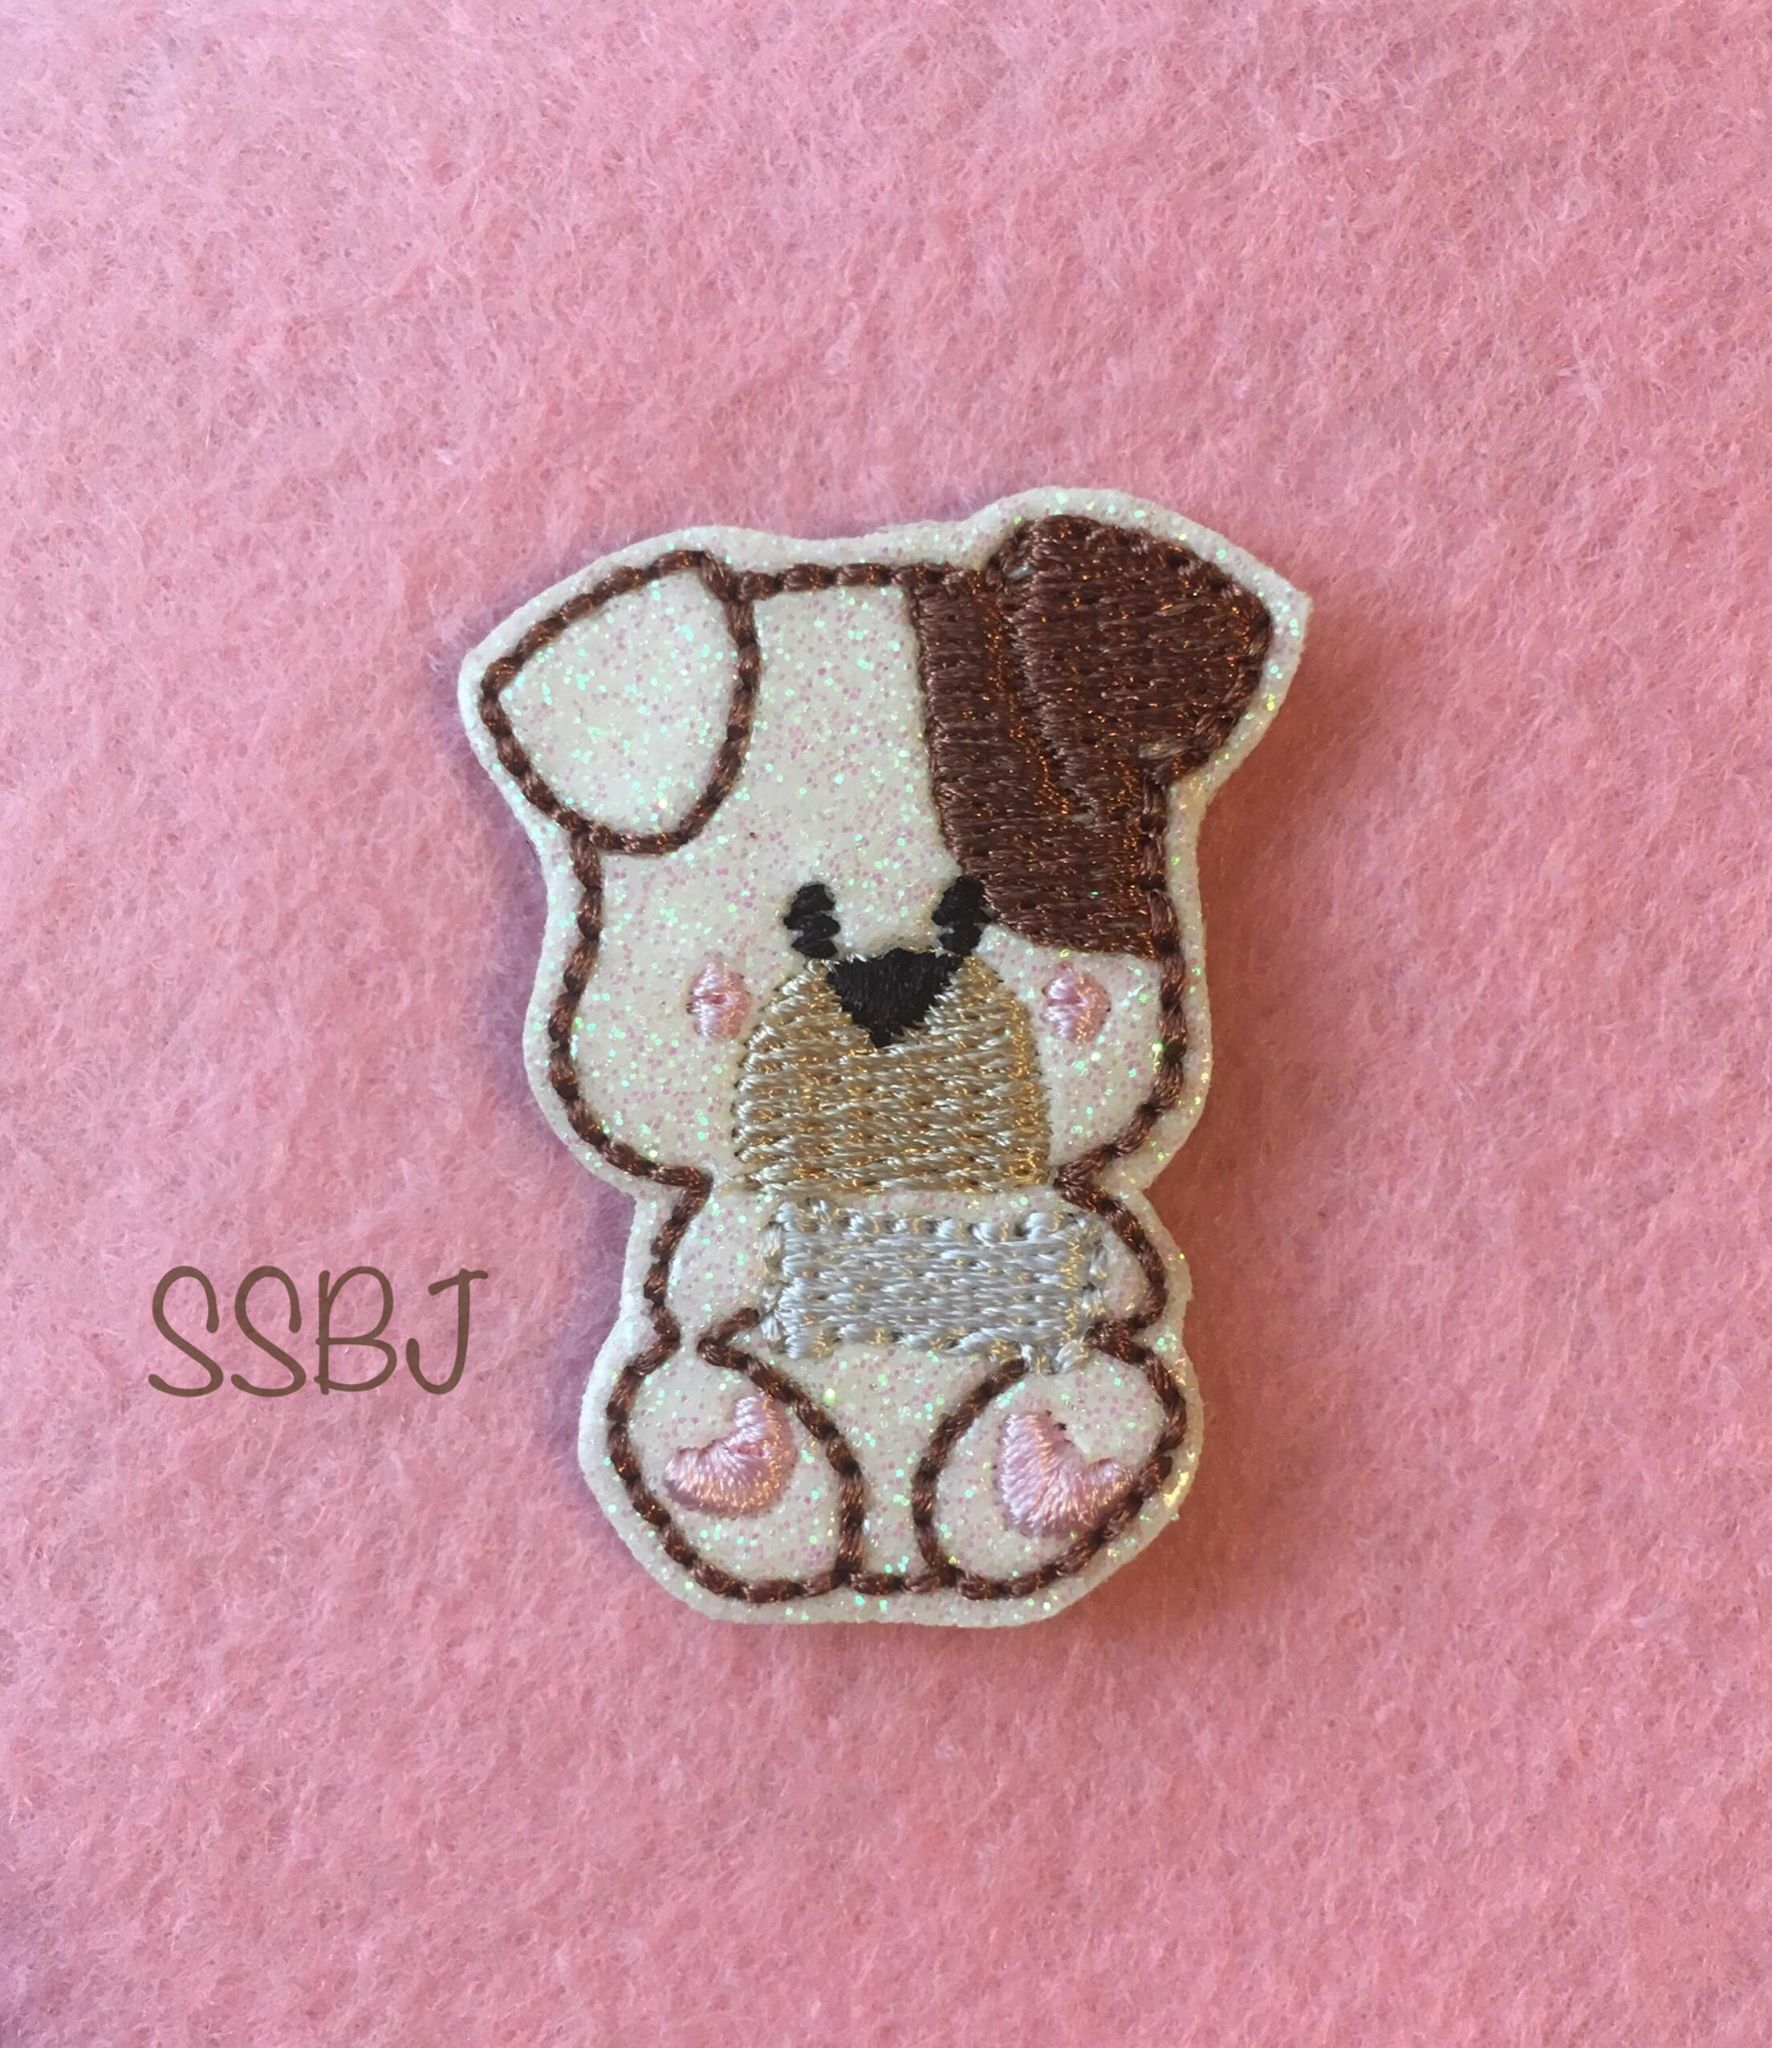 SSBJ Doggie Bone Embroidery File